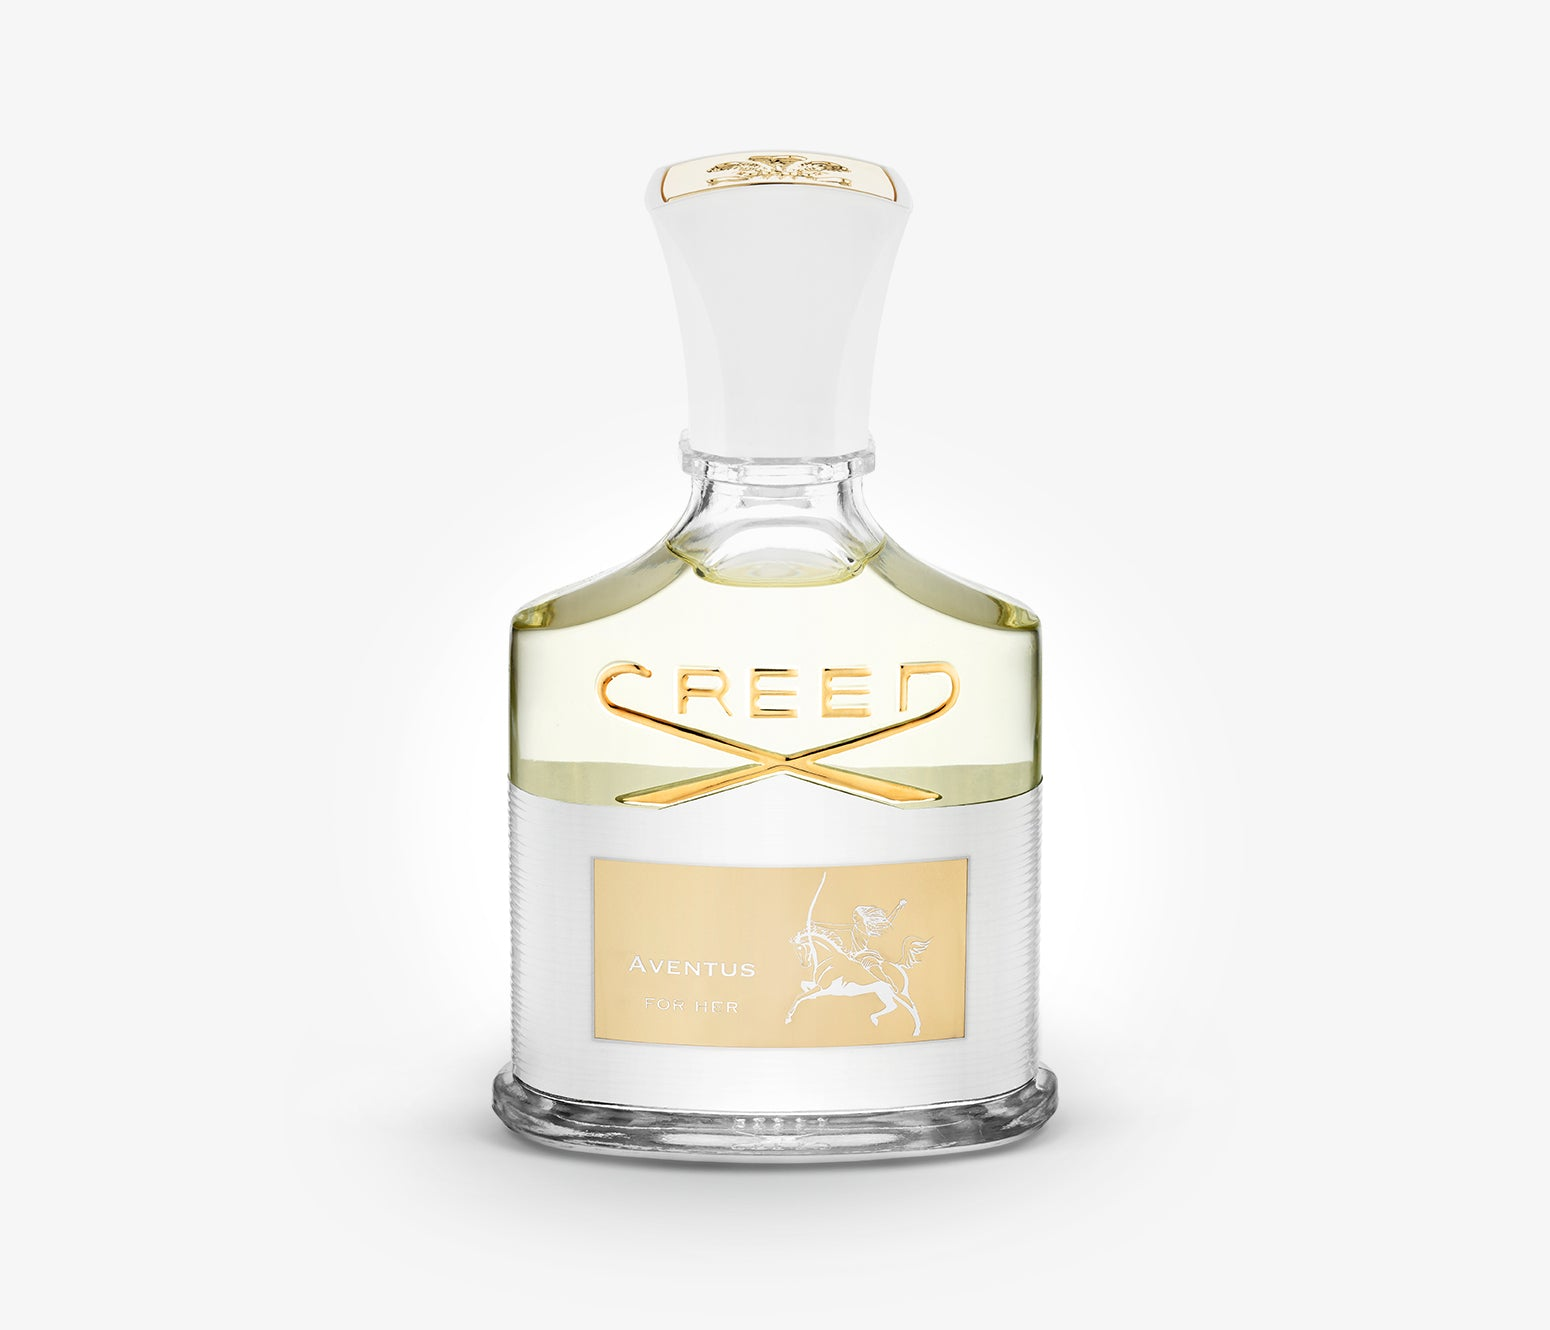 Creed - Aventus for her - 75ml - LSX001 - Product Image - Fragrance - Les Senteurs